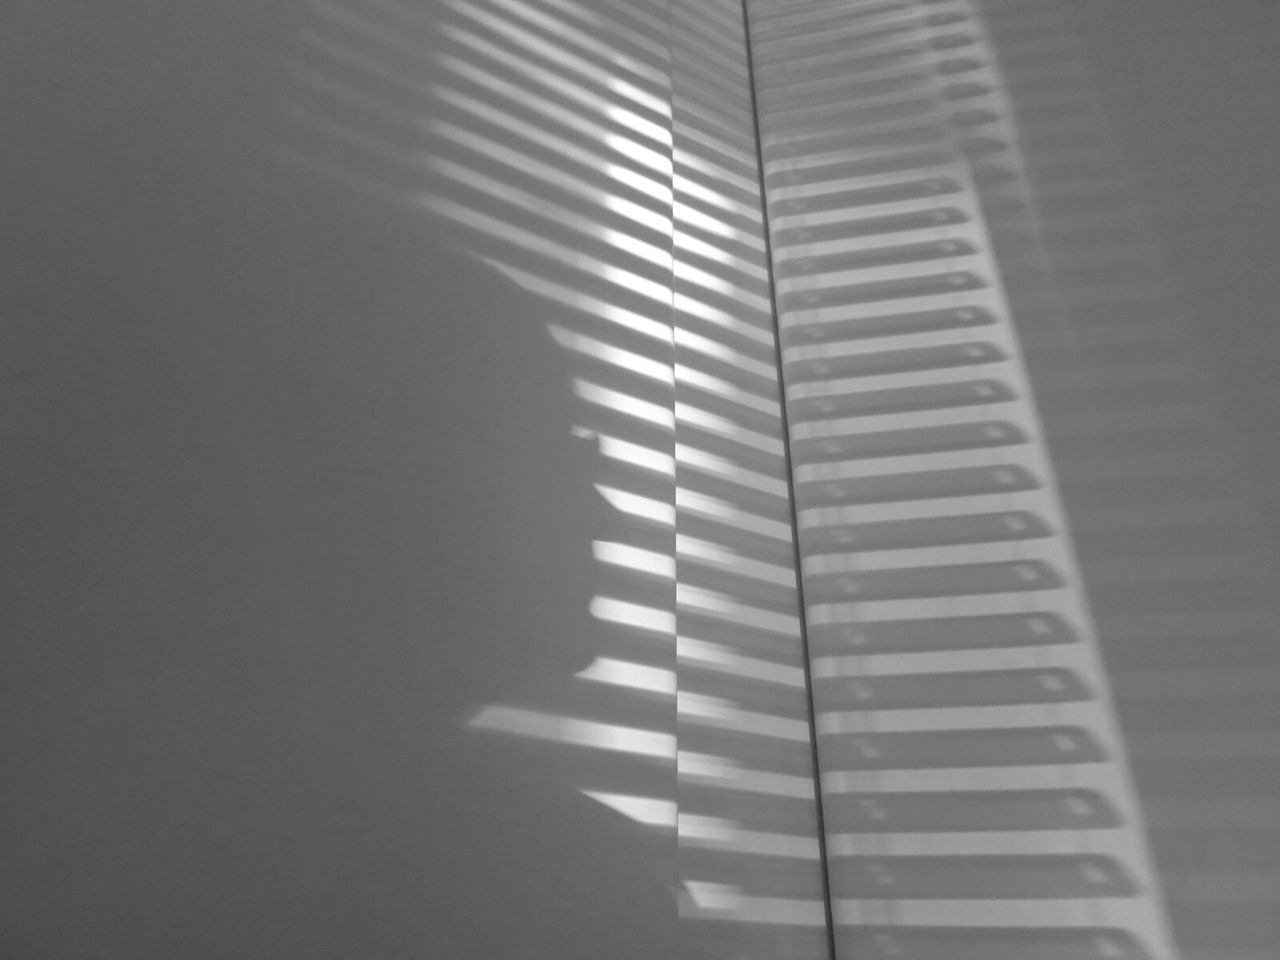 Shadow Of Person And Blinds On White Wall